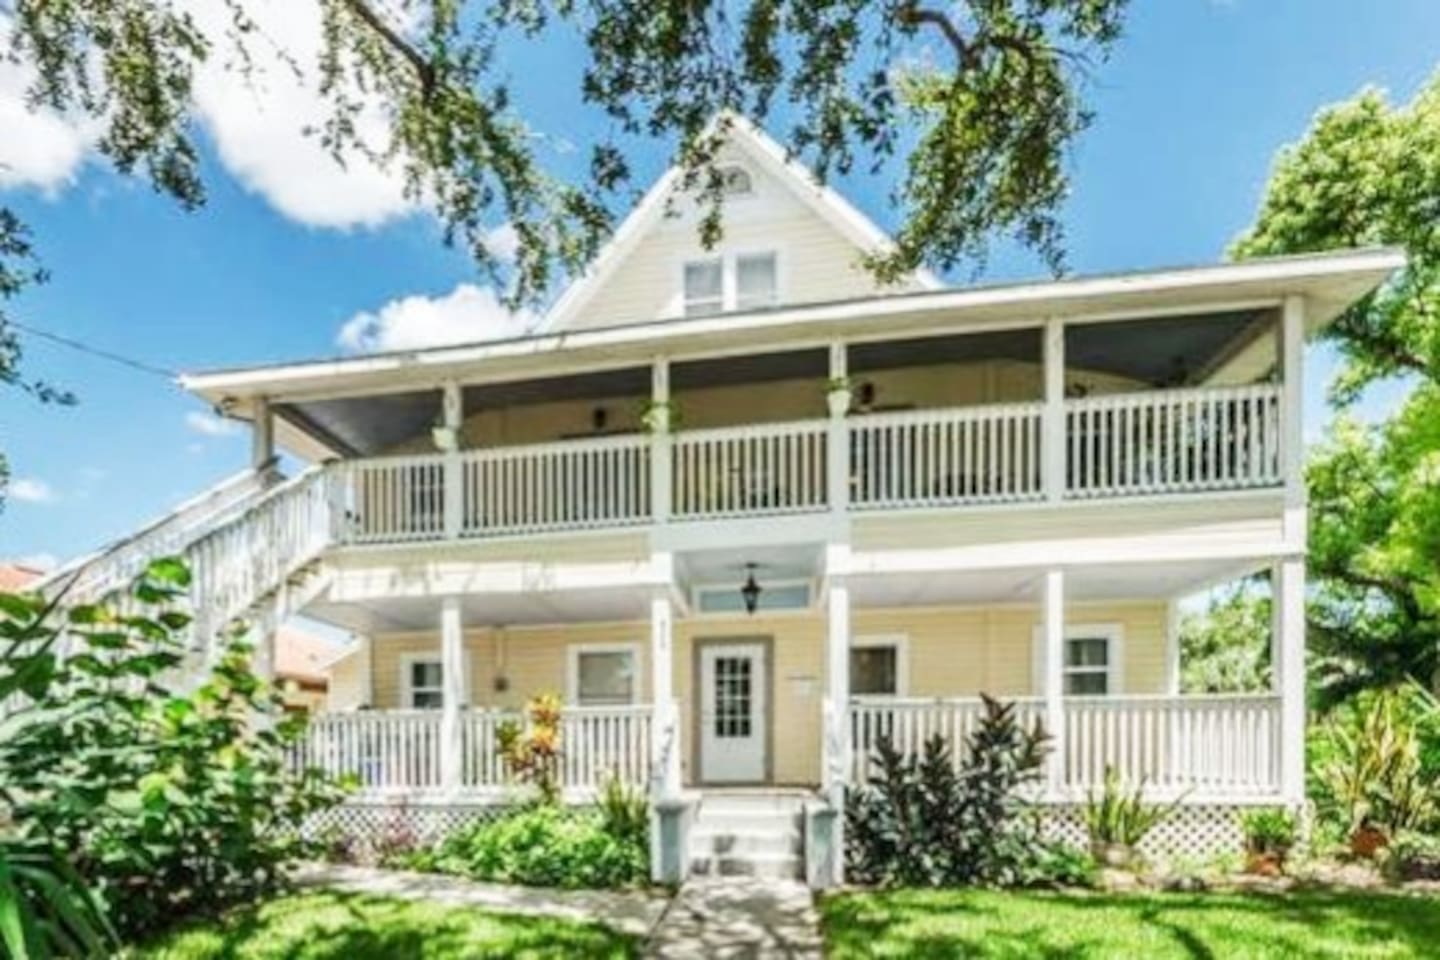 The Yellow House is a beautiful historic home in the Heart of Downtown Dunedin.